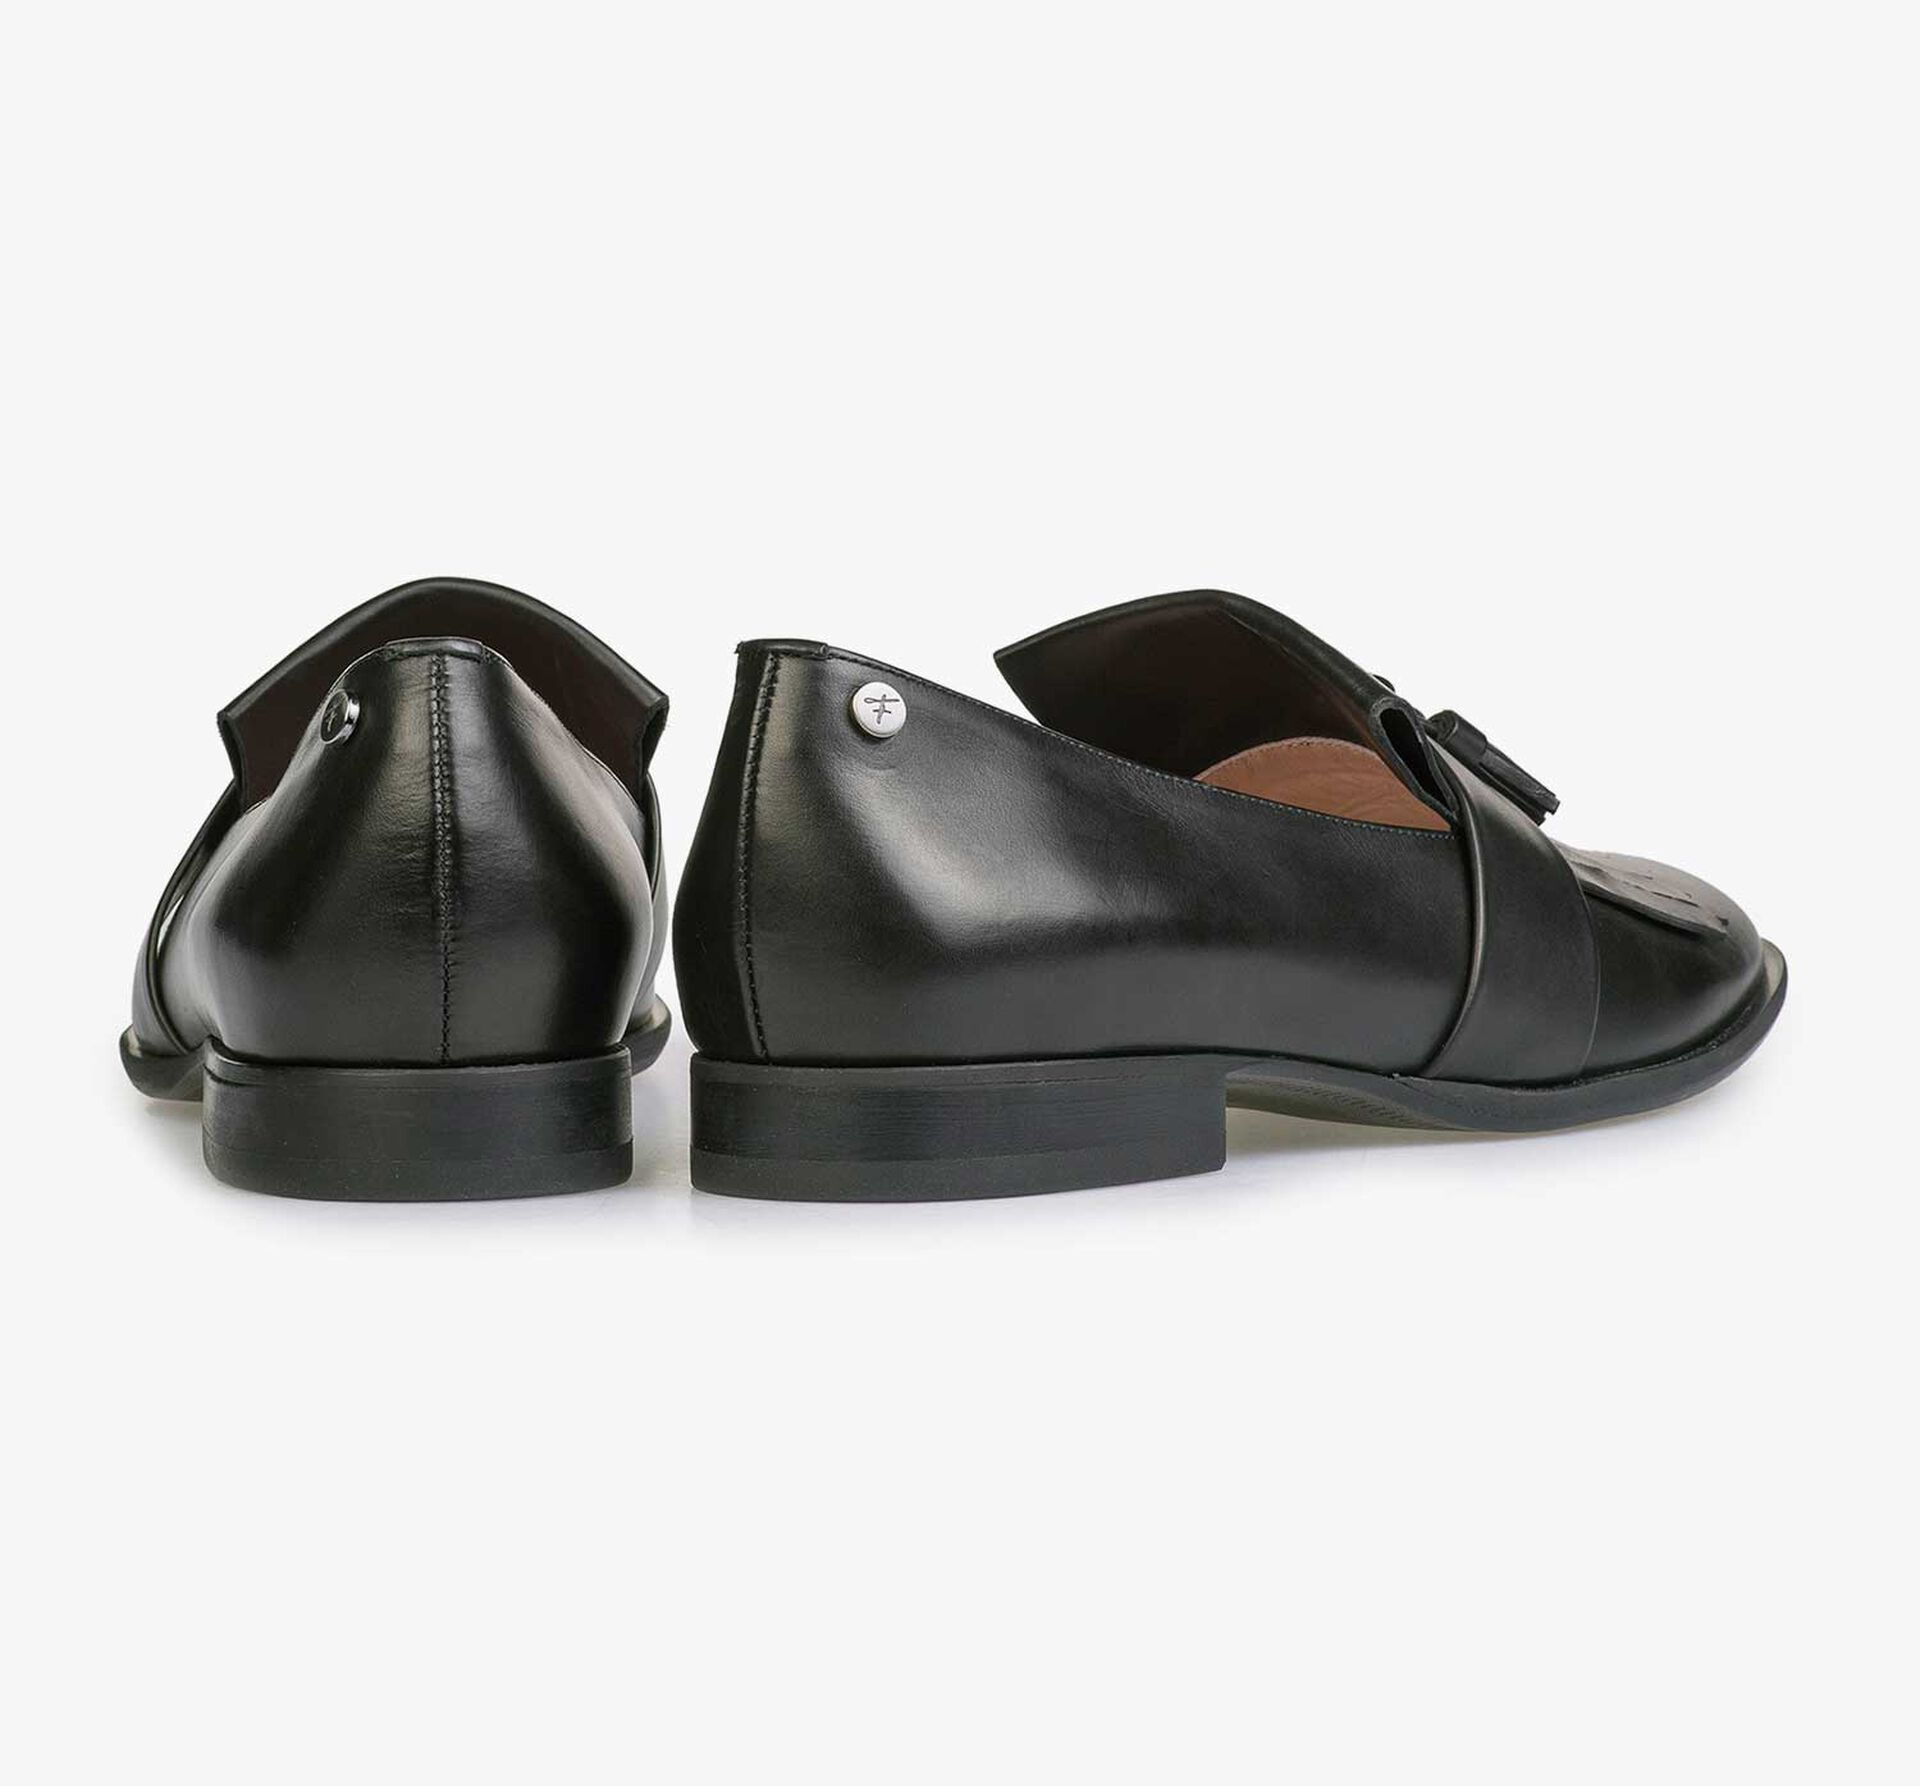 Black shiny calf's leather loafer